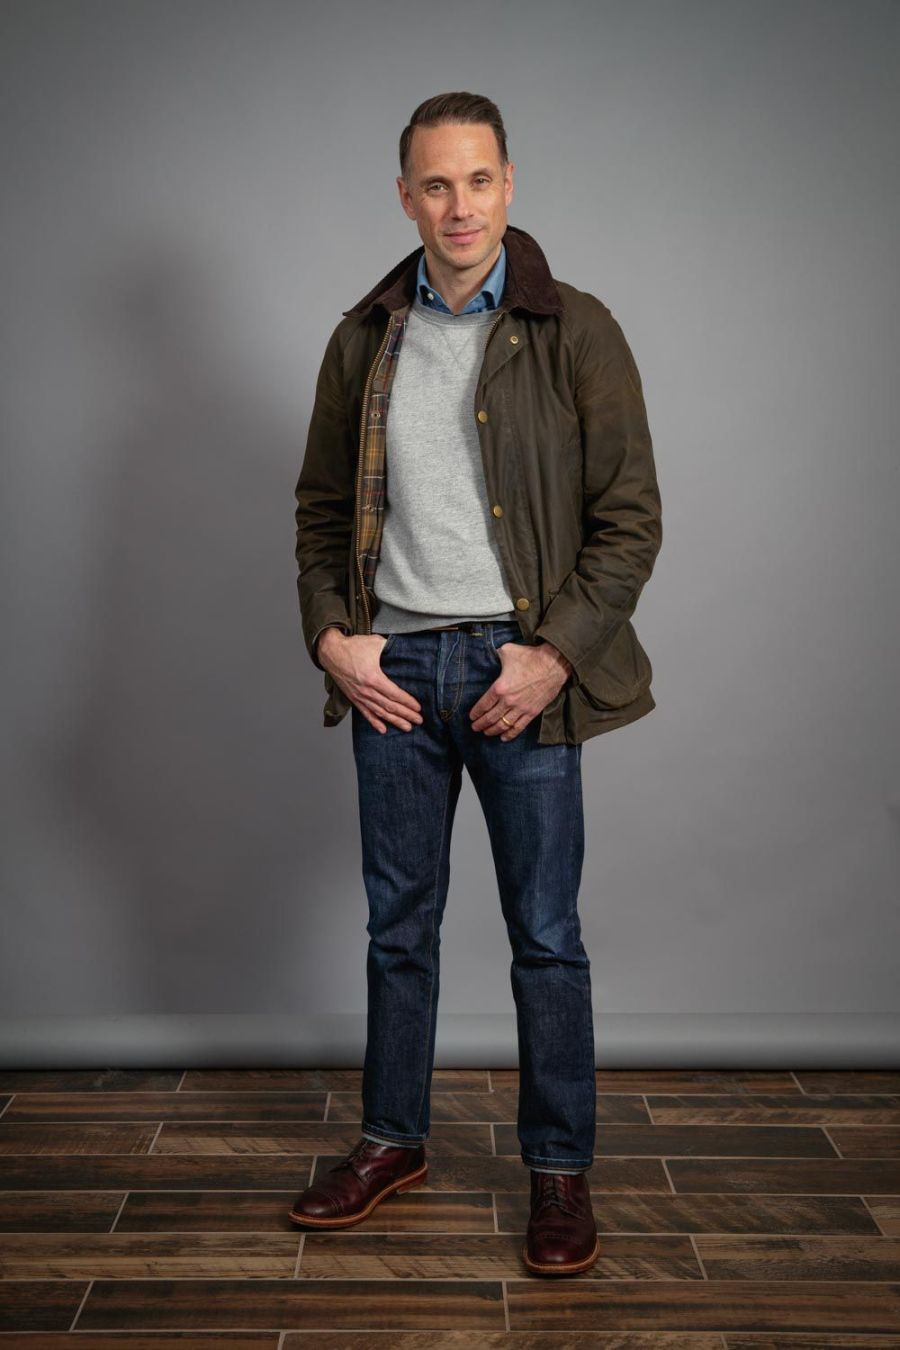 Barbour-jacket-and-jeans-and-boots-for-men-winter-2021.jpeg